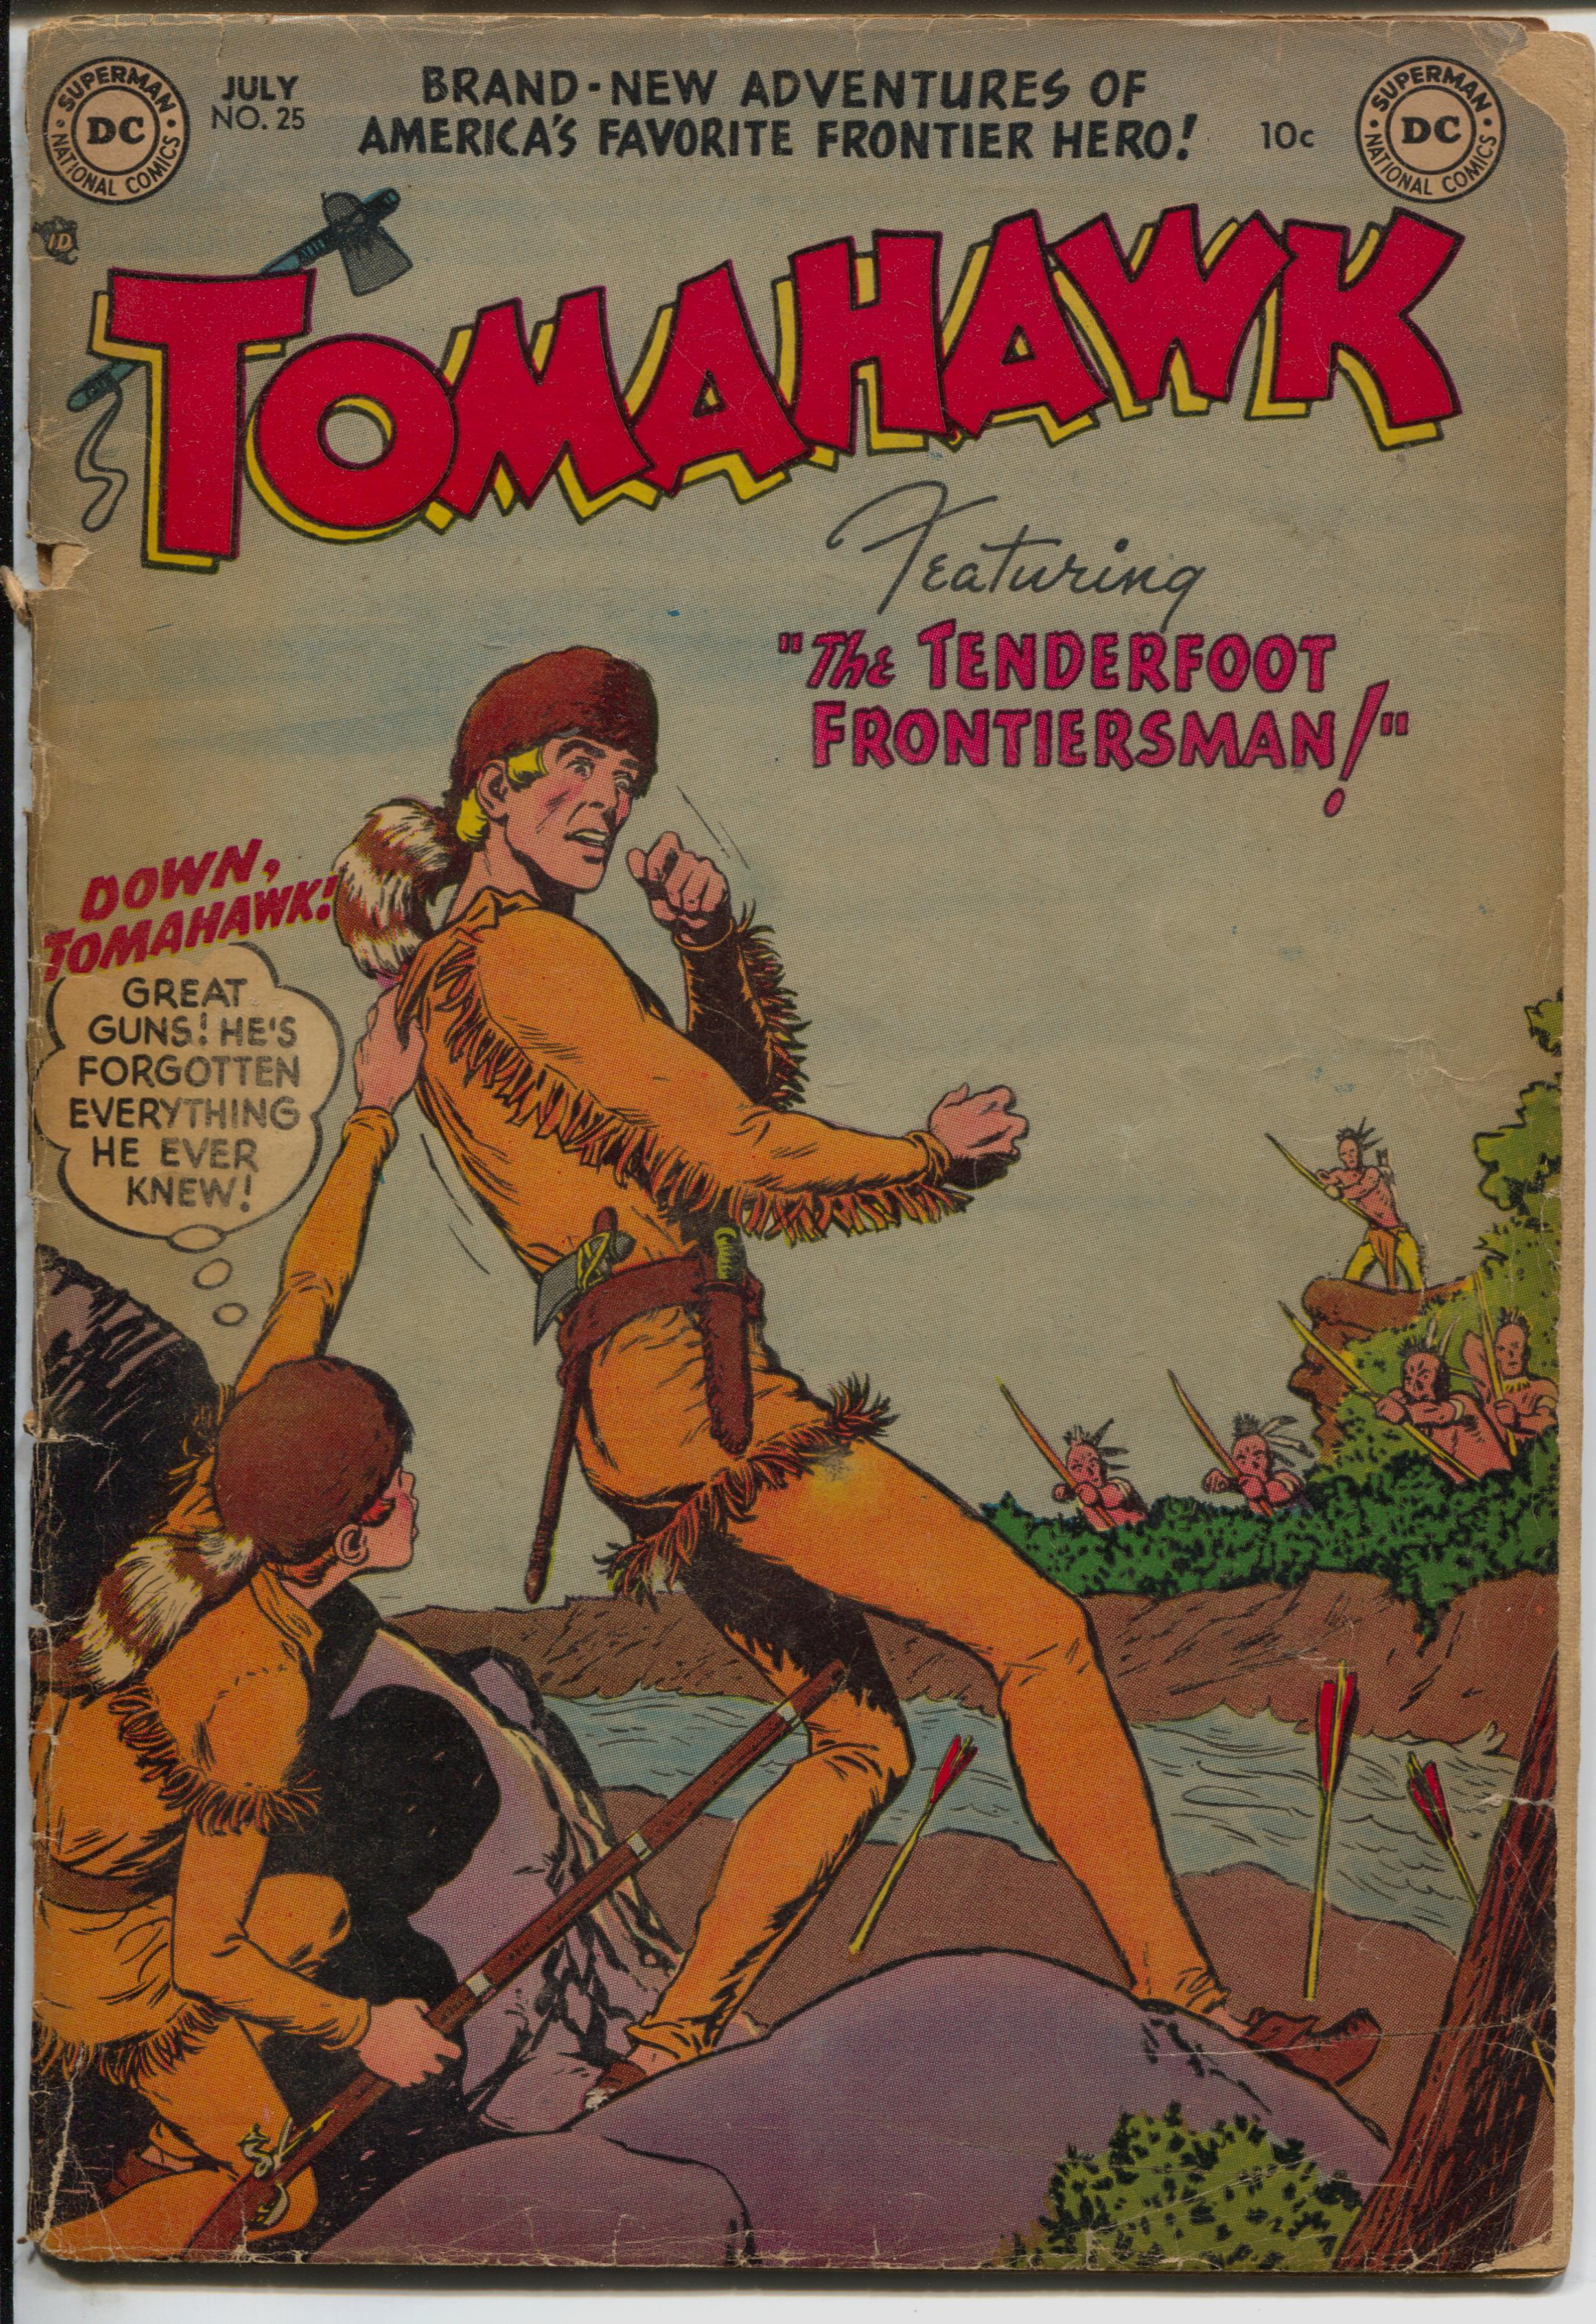 Tomahawk #25 1954-DC-Red Coats-Indian fight cover-G Good -Indian fight cover -Fight the Red Coats -Cover detached Condition: G